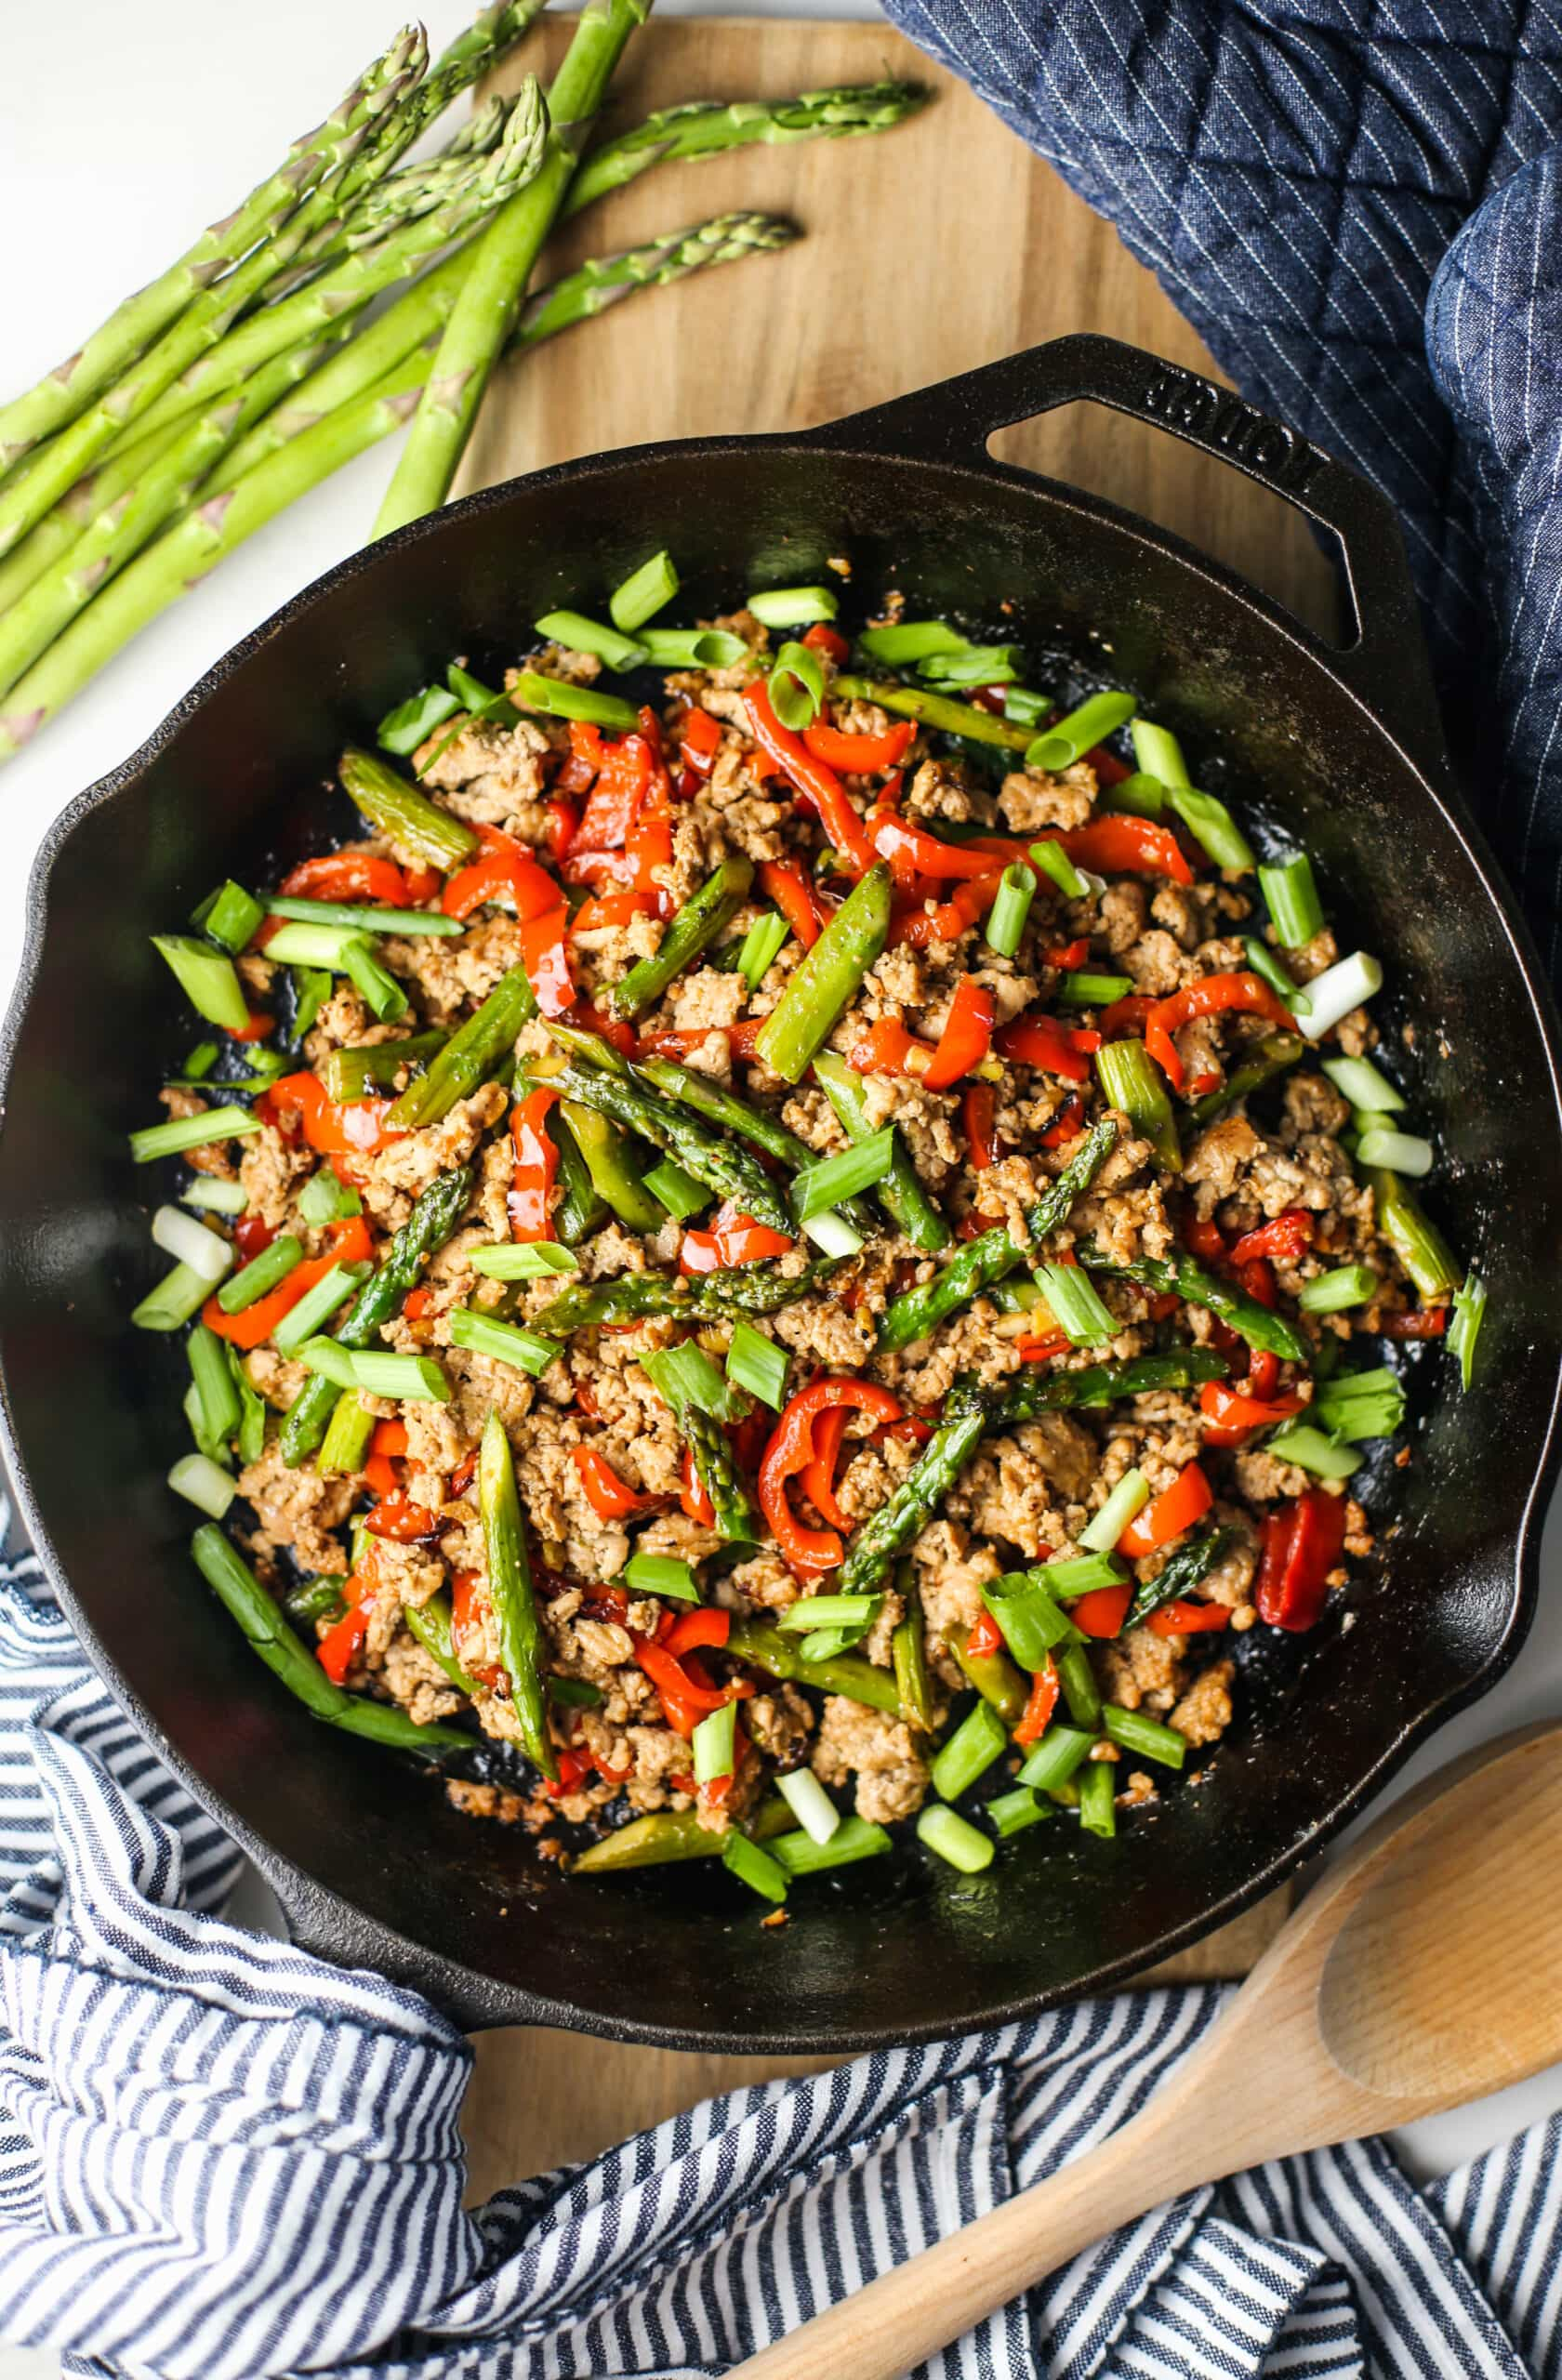 Overhead view of a stir-fry featuring ground turkey, asparagus, and bell pepper in a cast iron skillet.